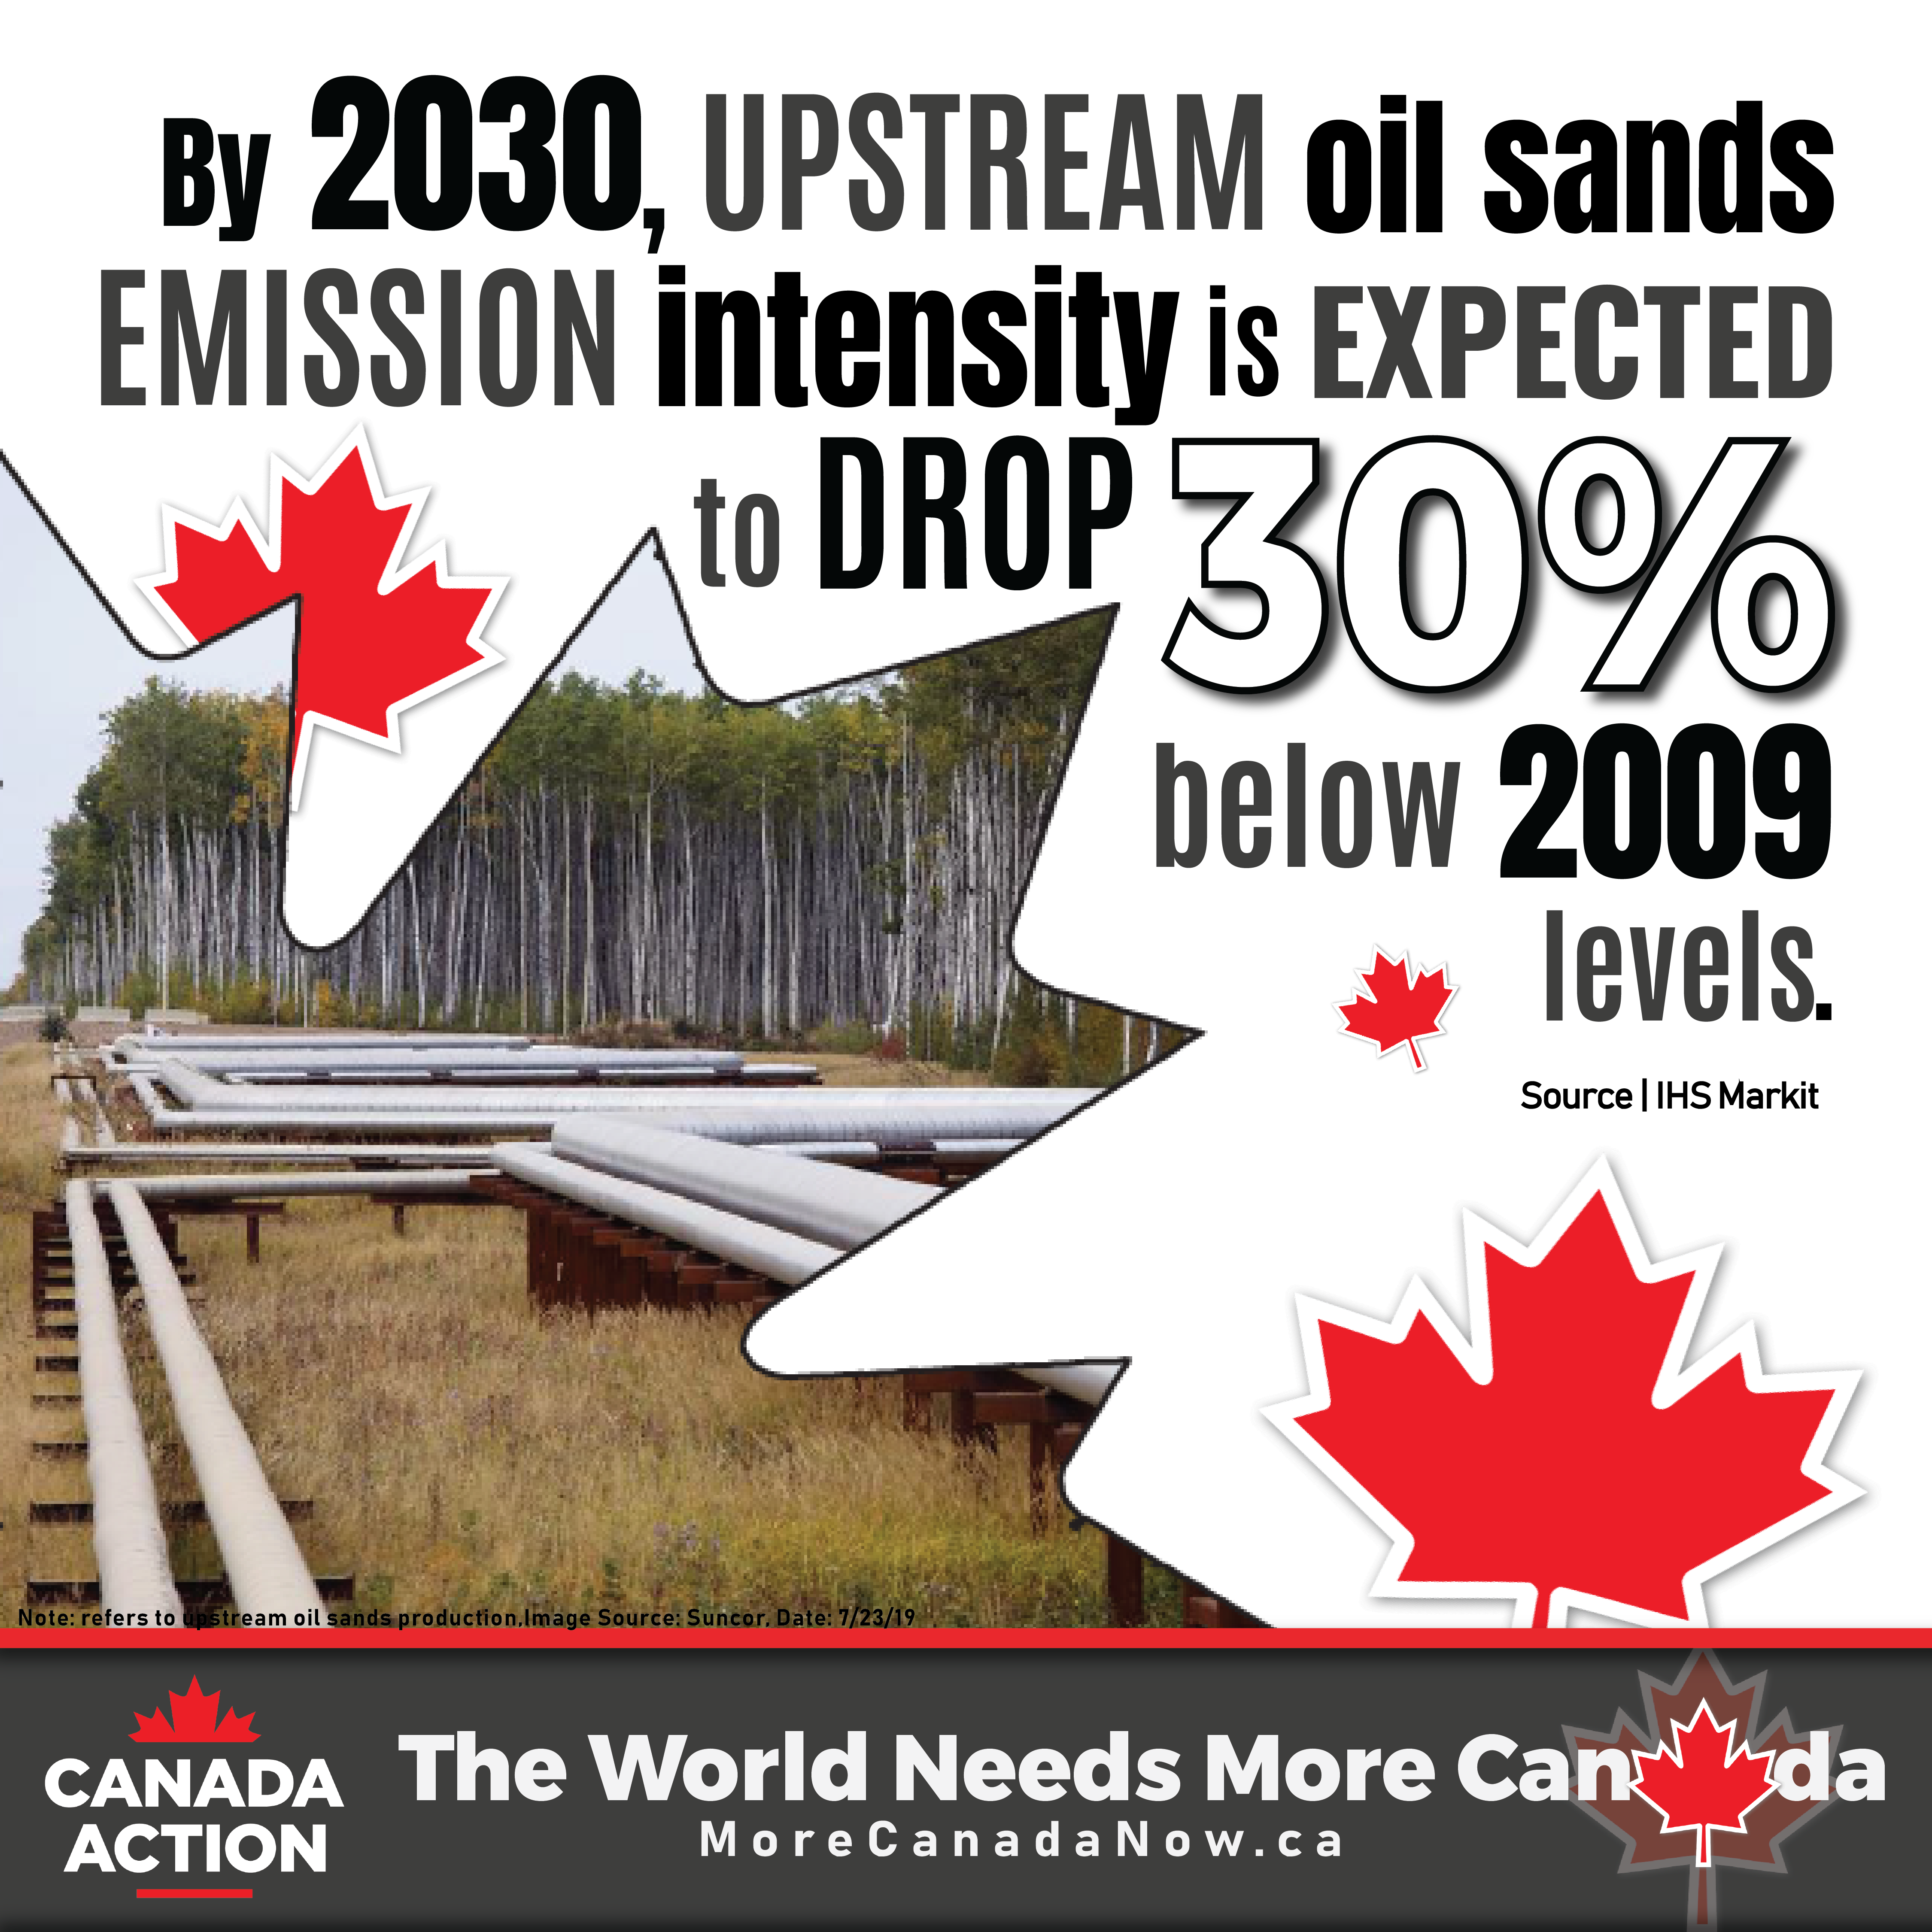 upstream oil sands emission intensity projections by 2030